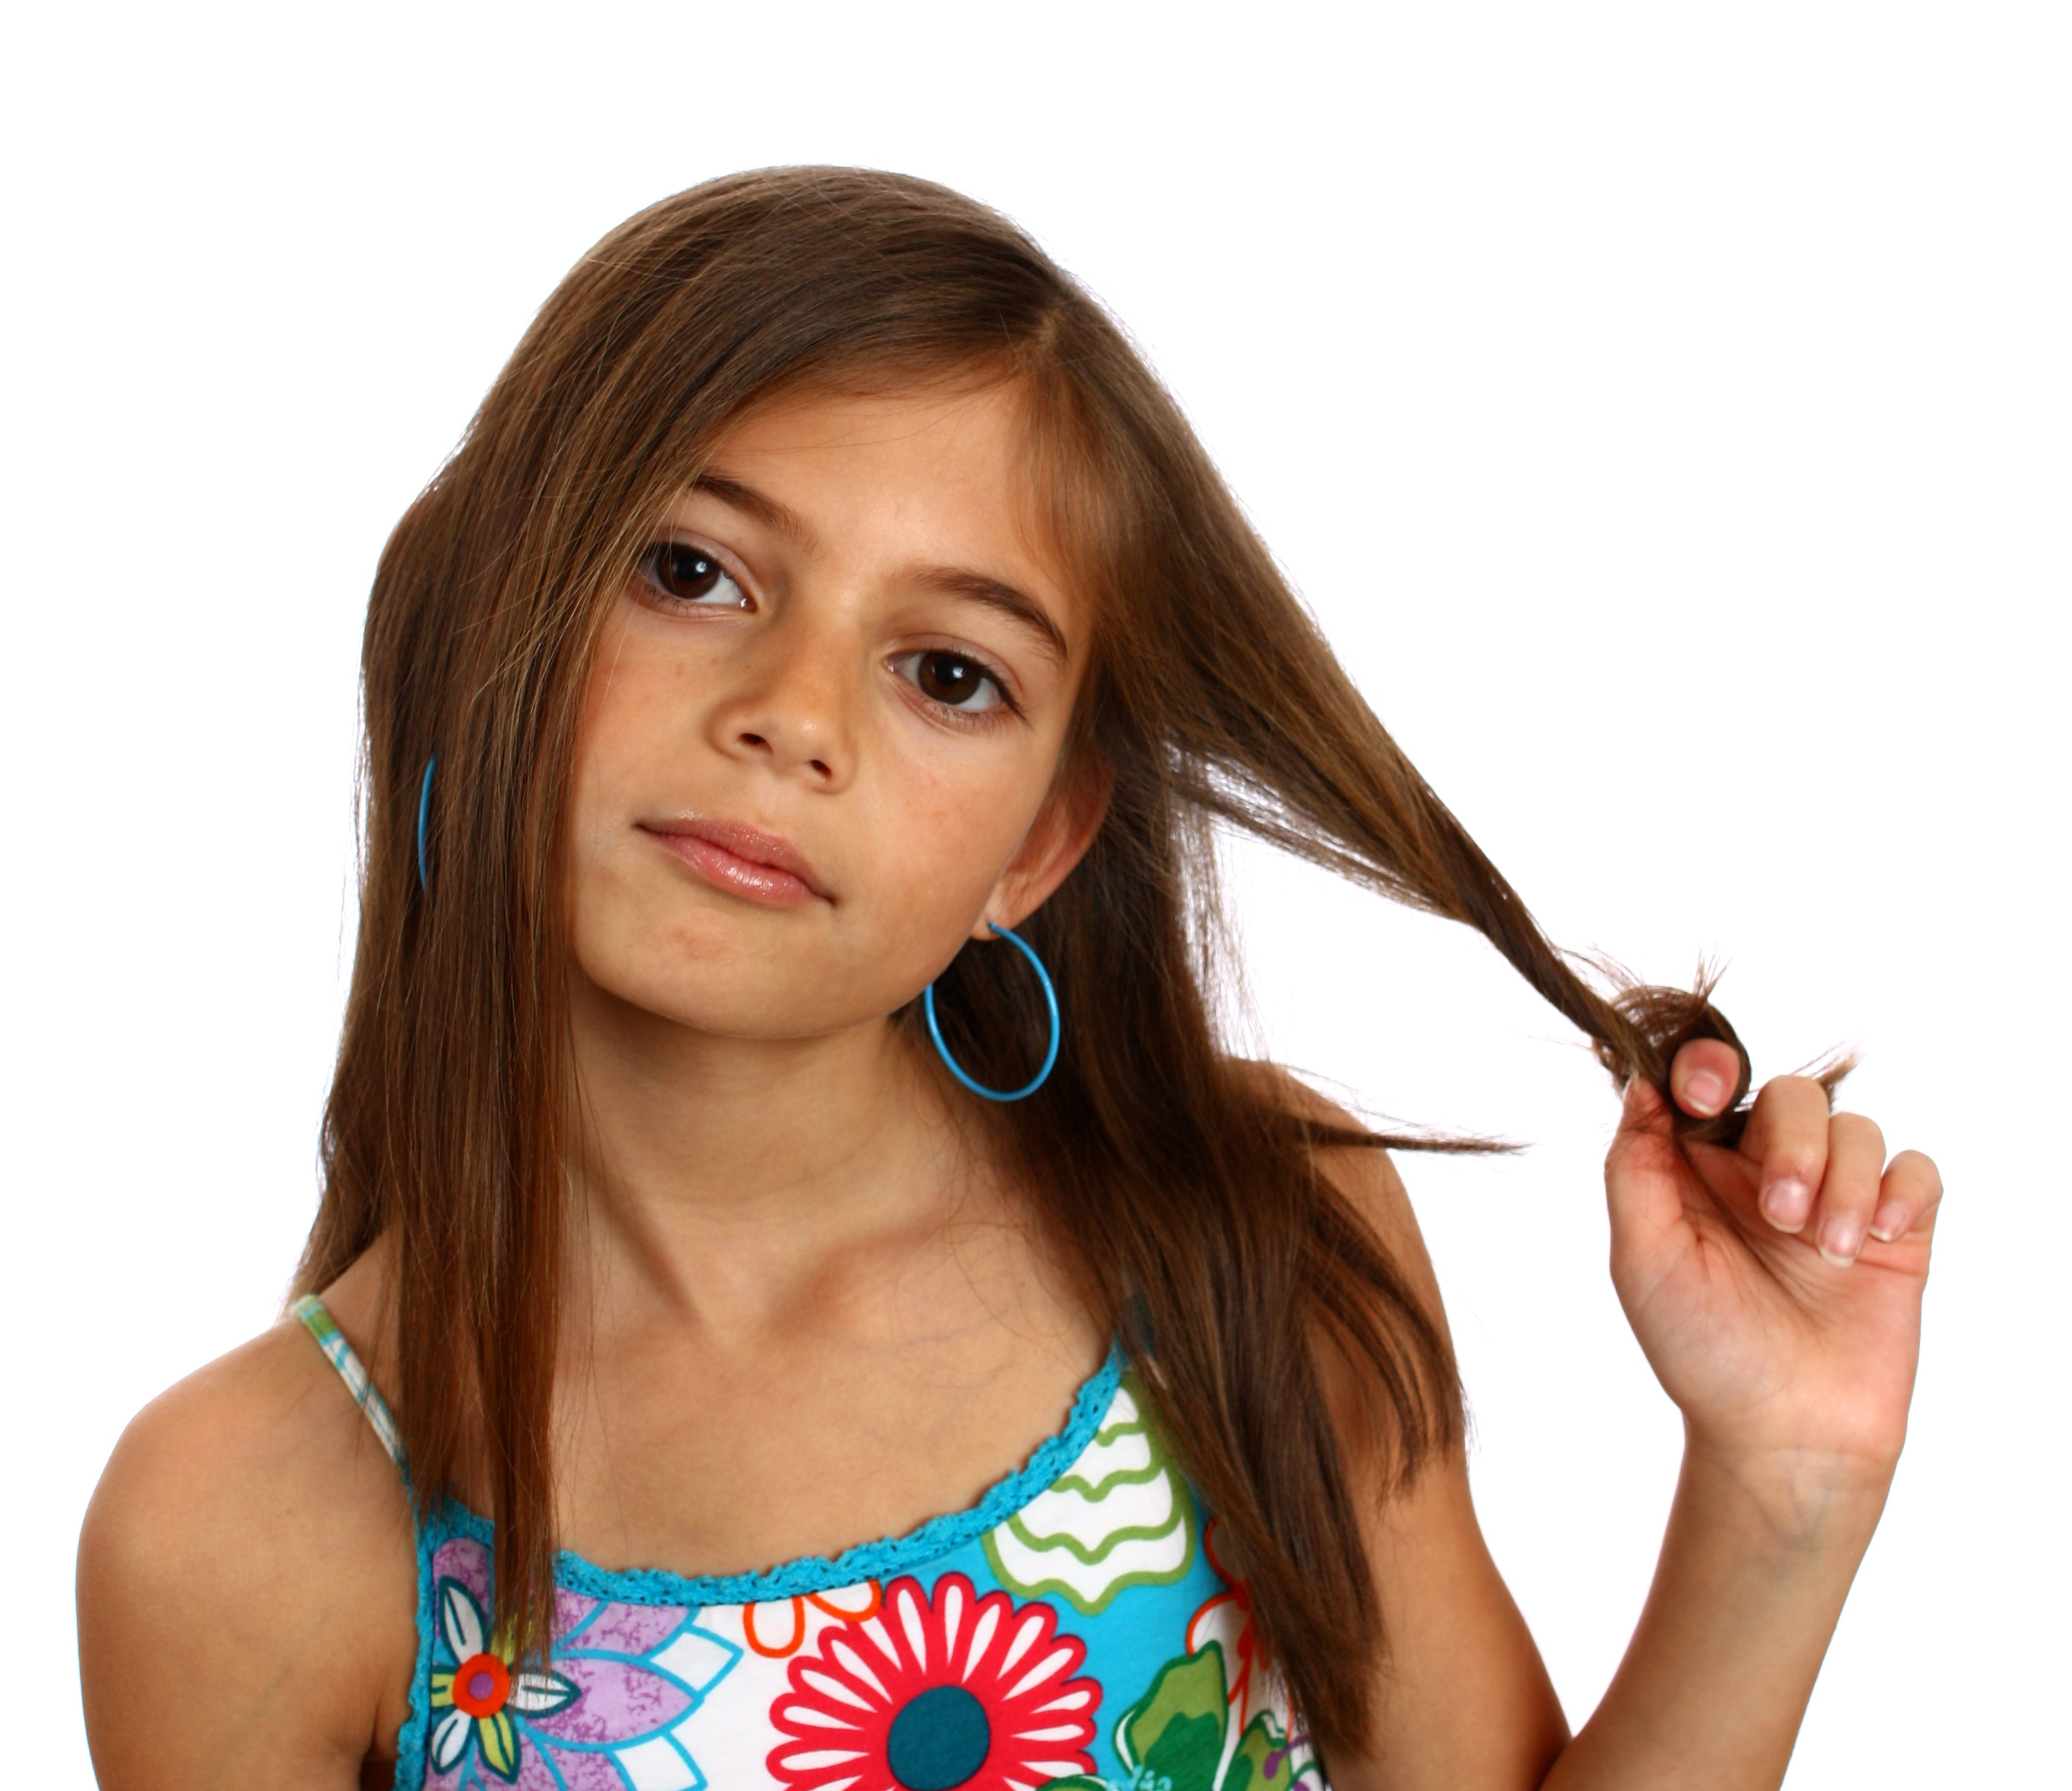 A pretty young girl pulling on her hair, Beautiful, Kids, Wondering, Thoughtful, HQ Photo